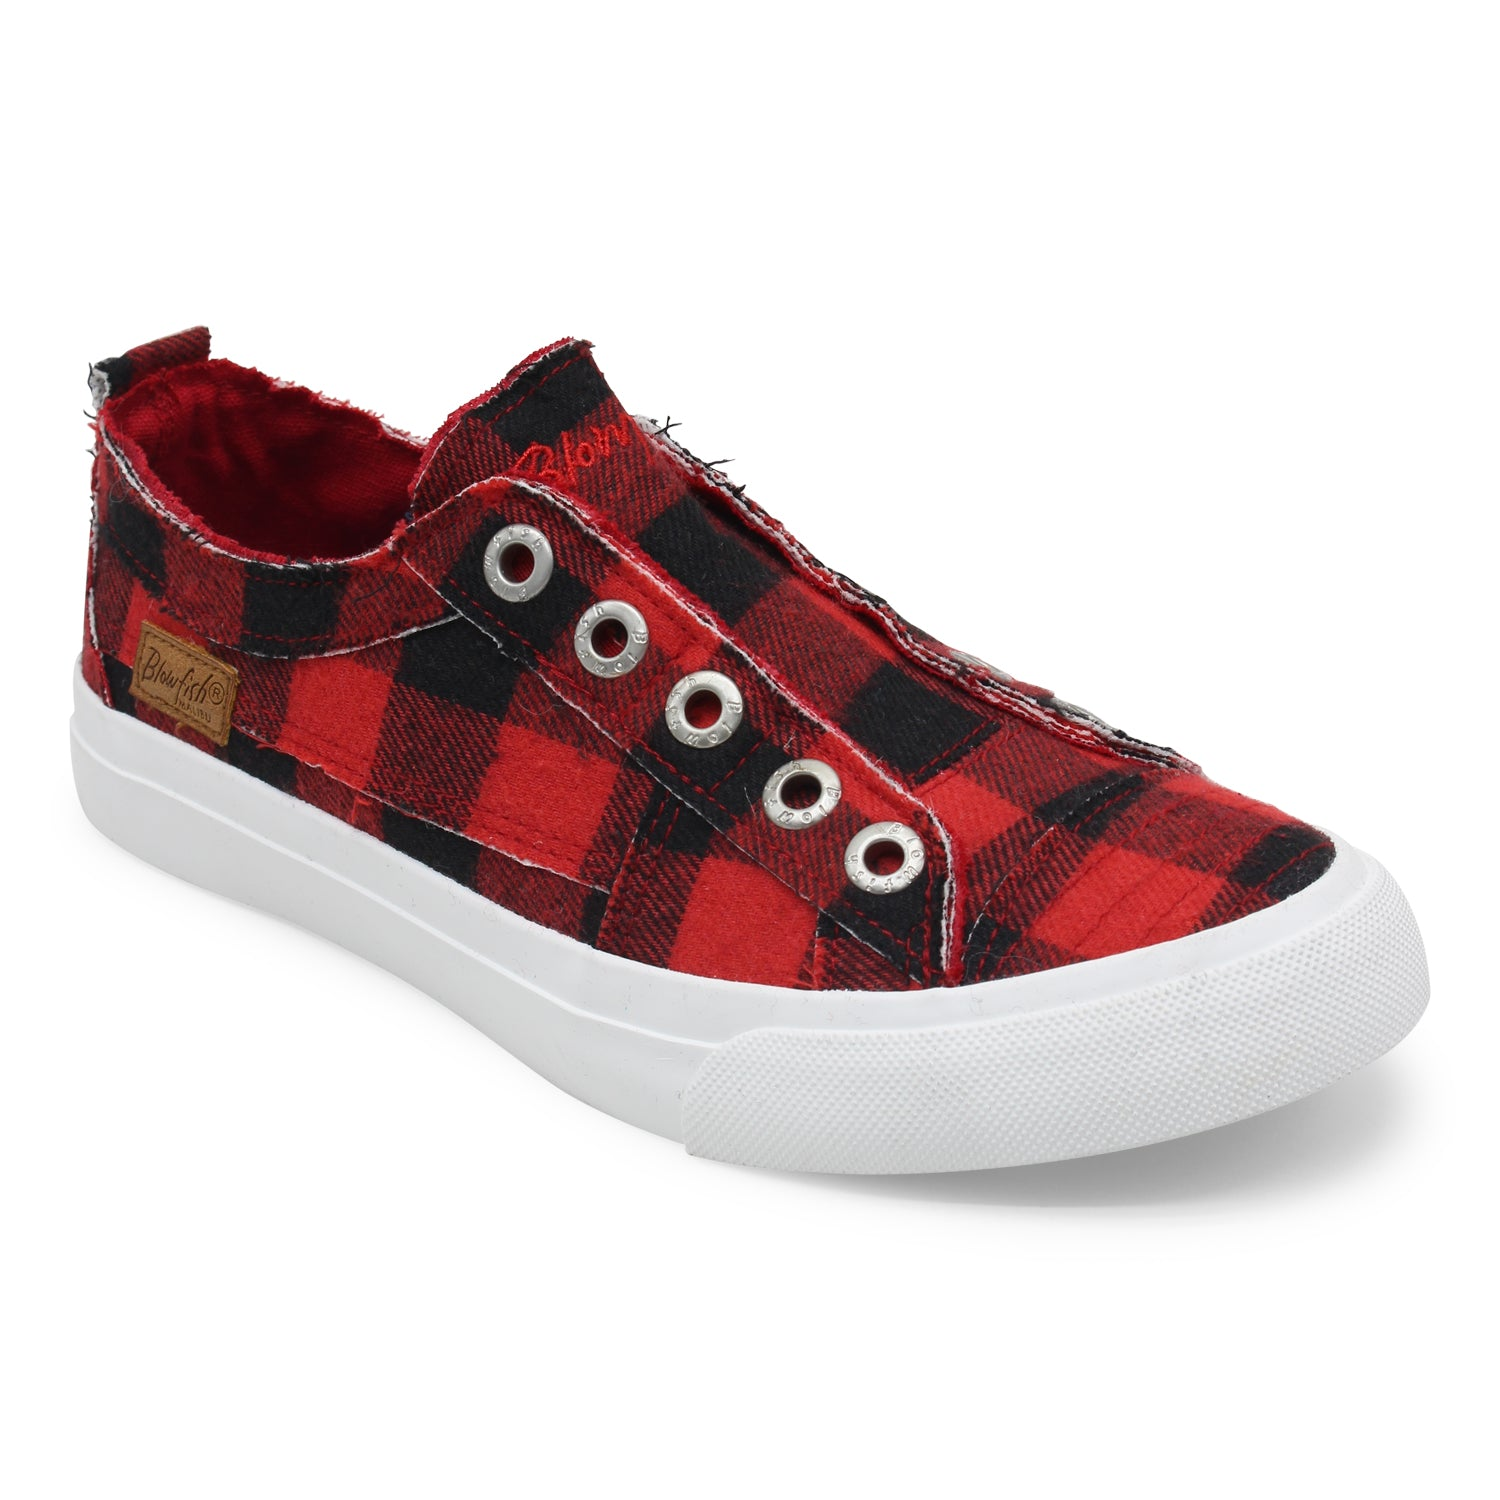 'Blowfish Malibu' ZS-0061 314 - Women's Play Slip On - Red Buffalo